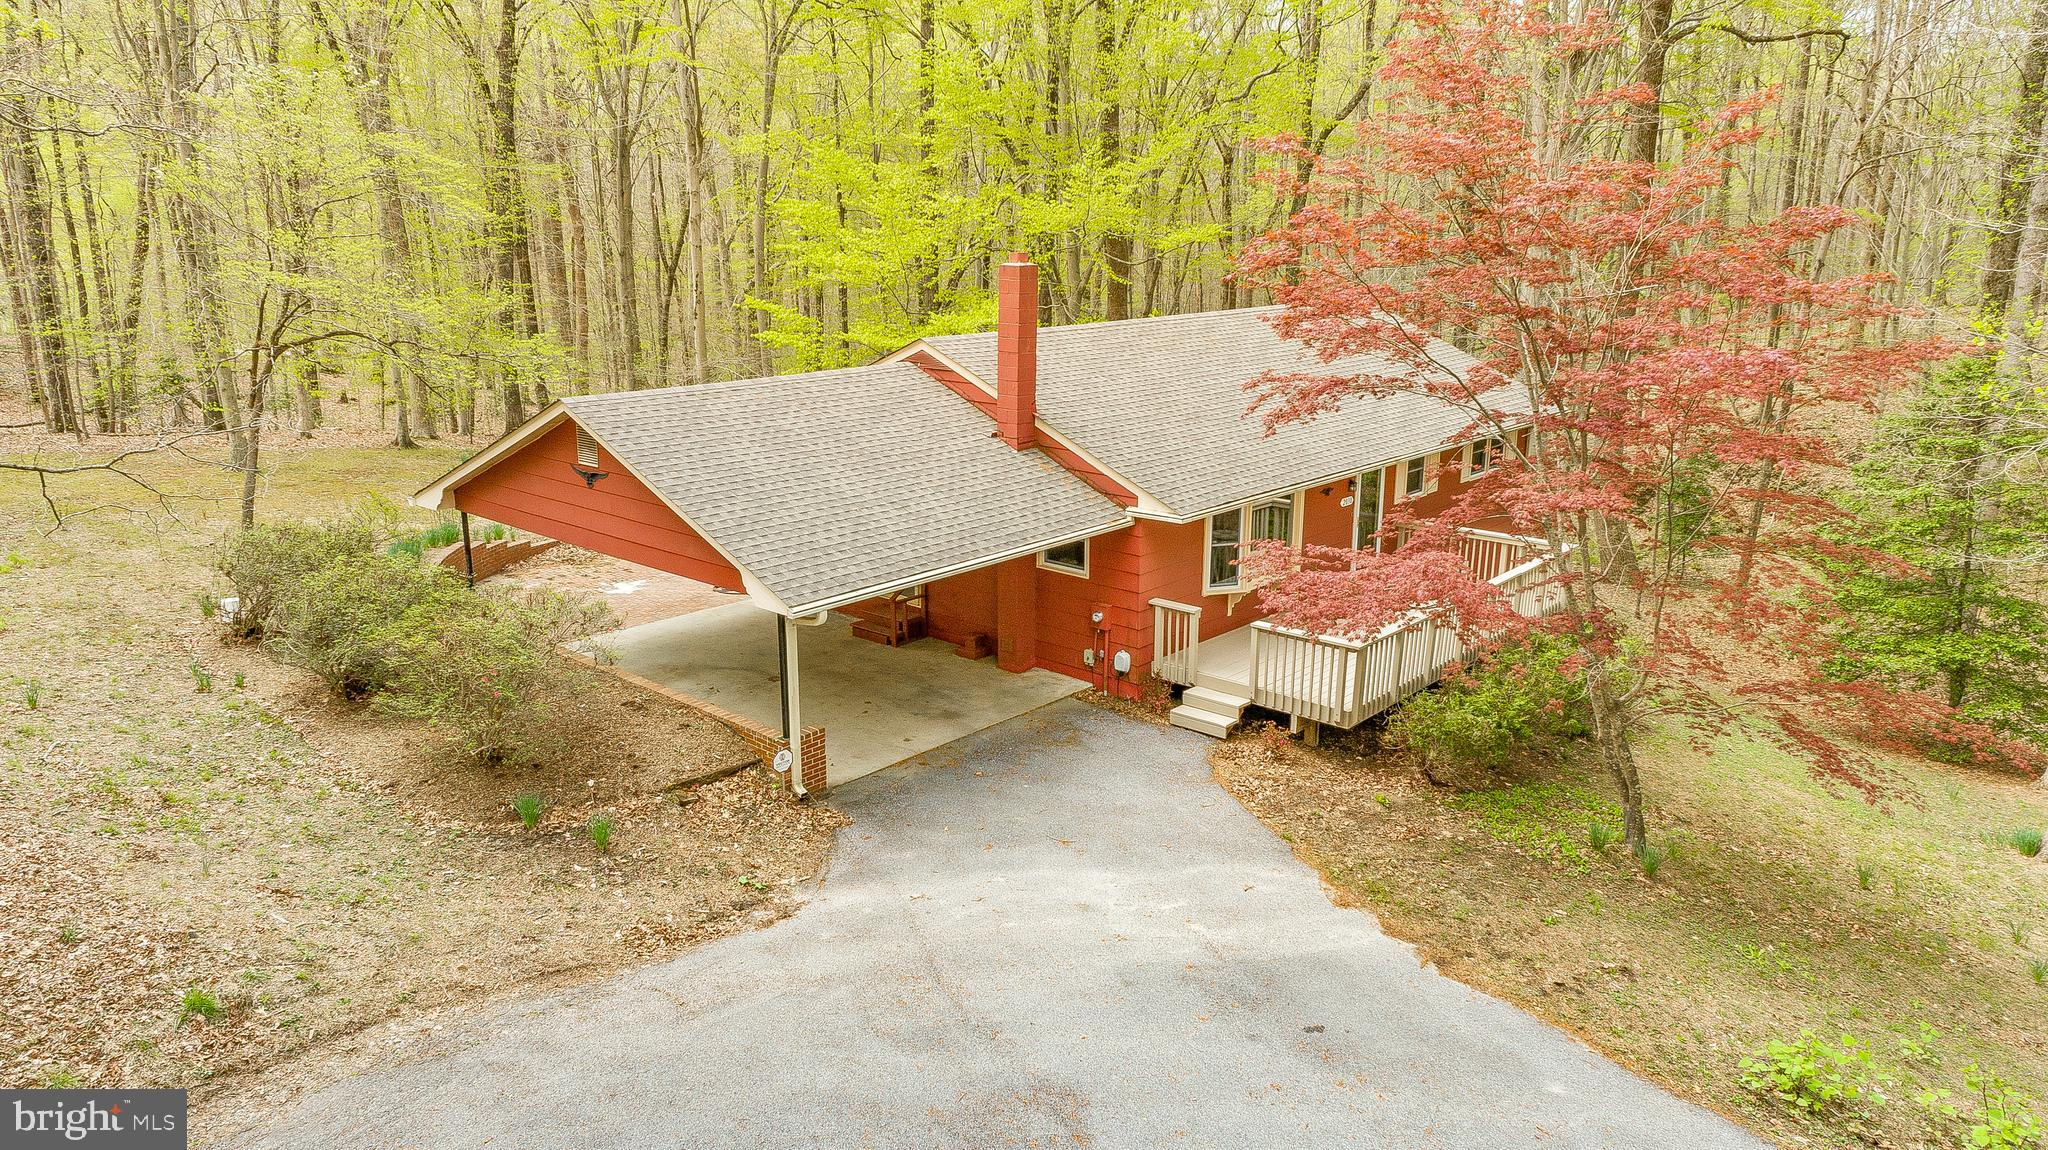 Immaculate 3 bed, 2.5 bath rambler on 3.7 acres of privacy in sought after Dunkirk Woods.  This home